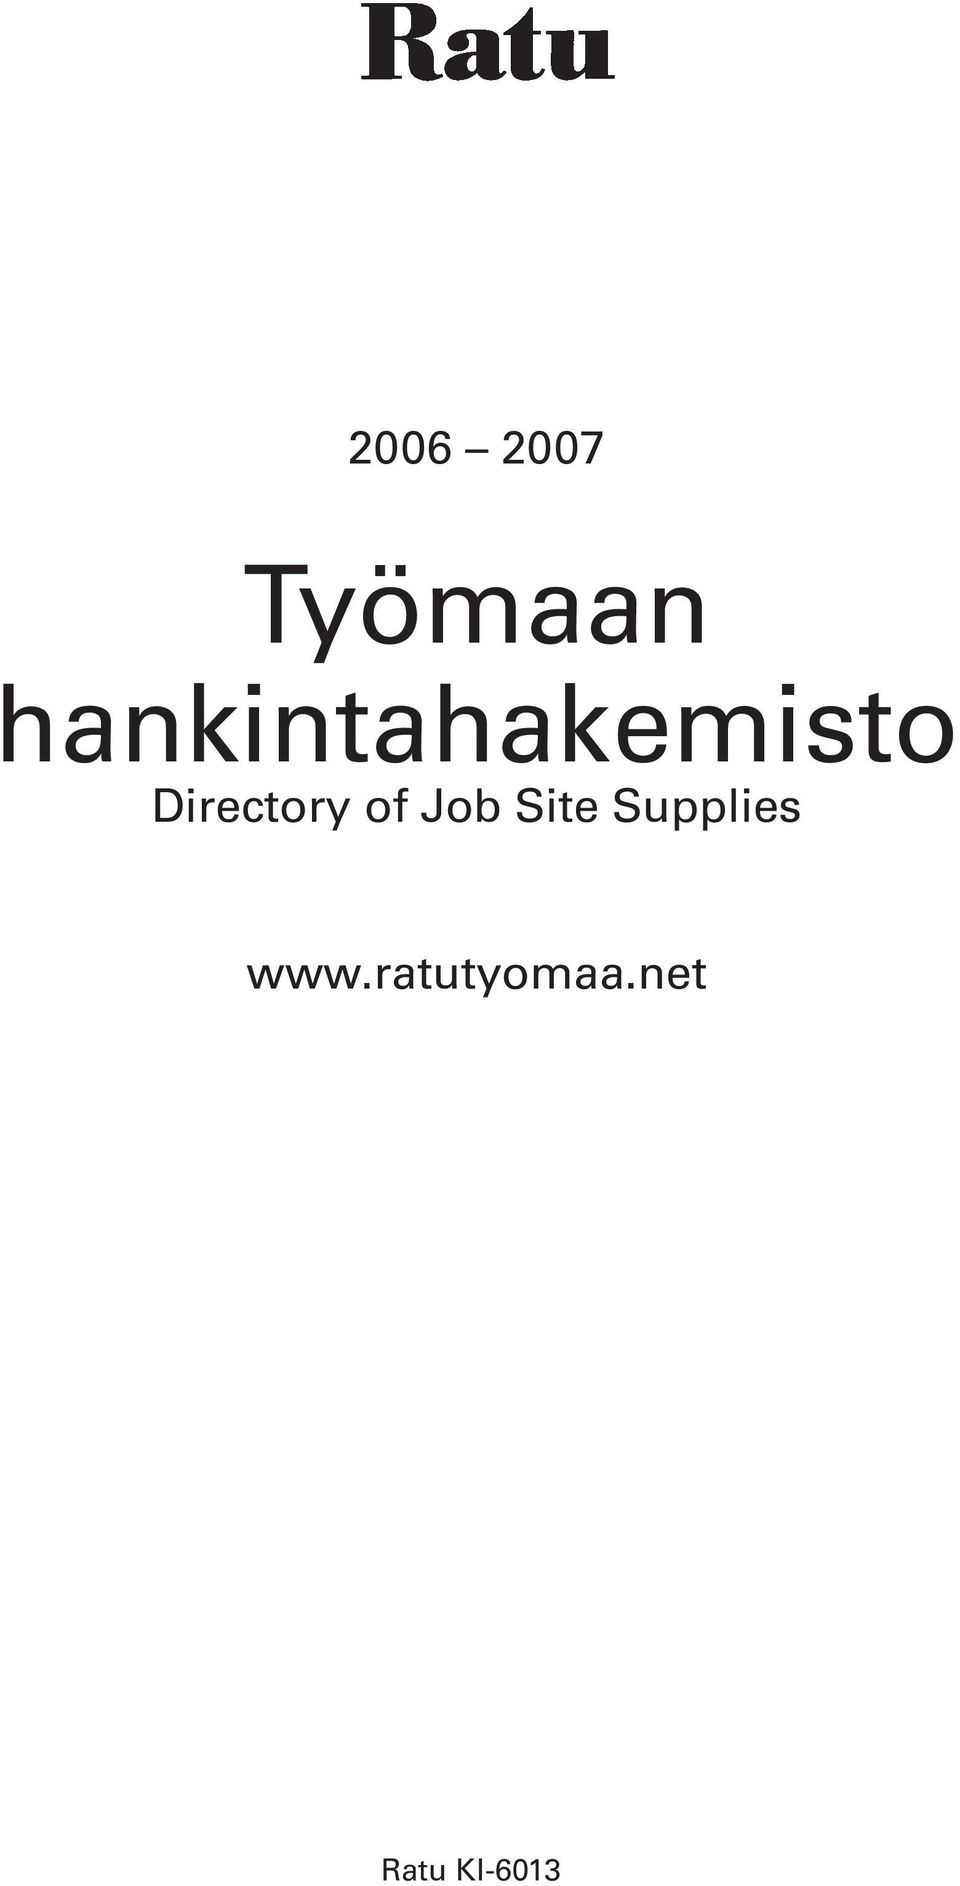 Directory of Job Site